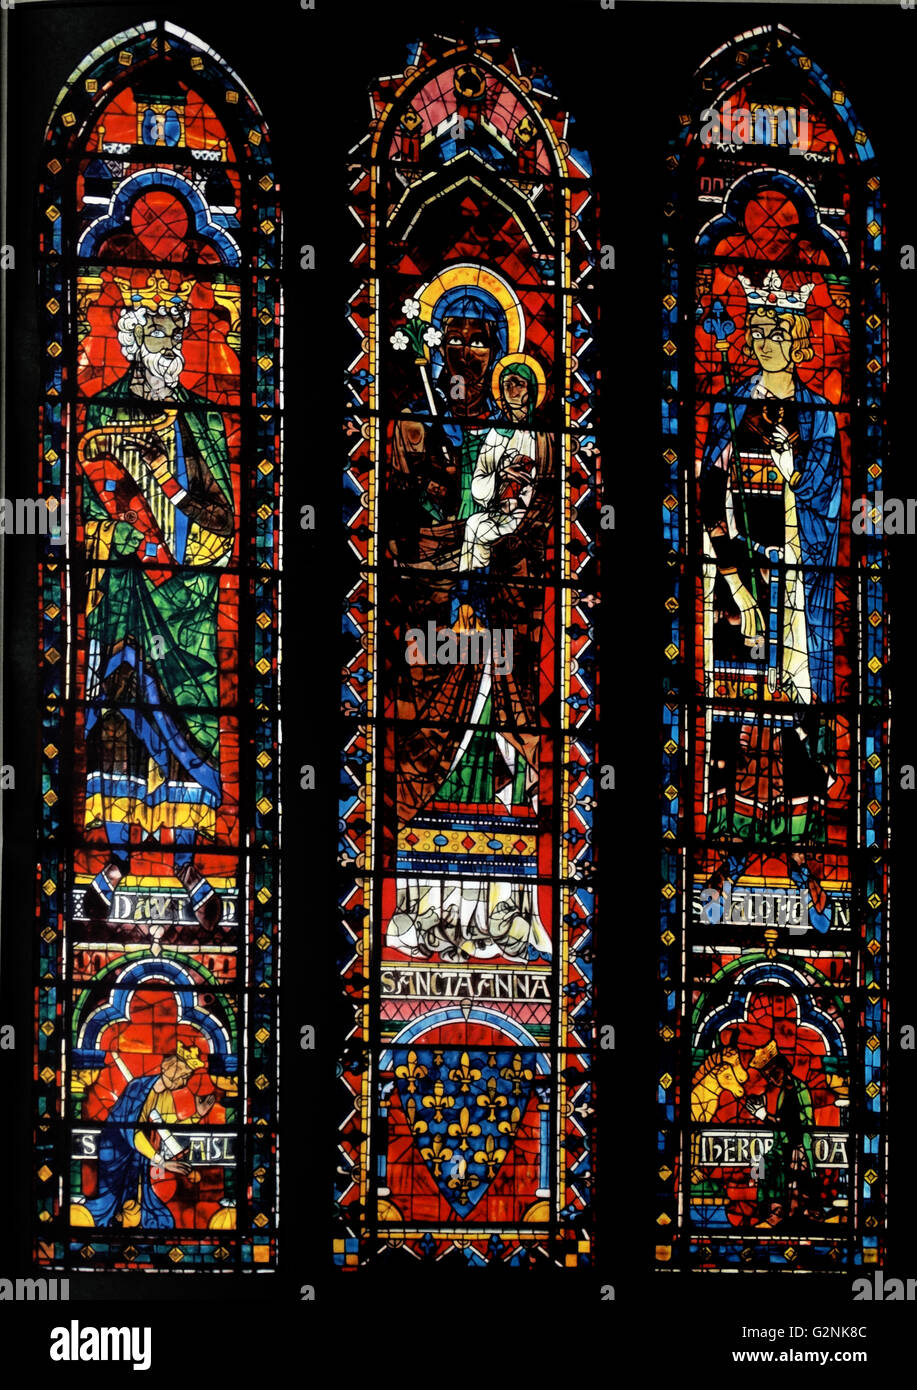 Stained glass windows from the North Transept of Chartres Cathedral, France. Shows King David with harp; St Anne Stock Photo